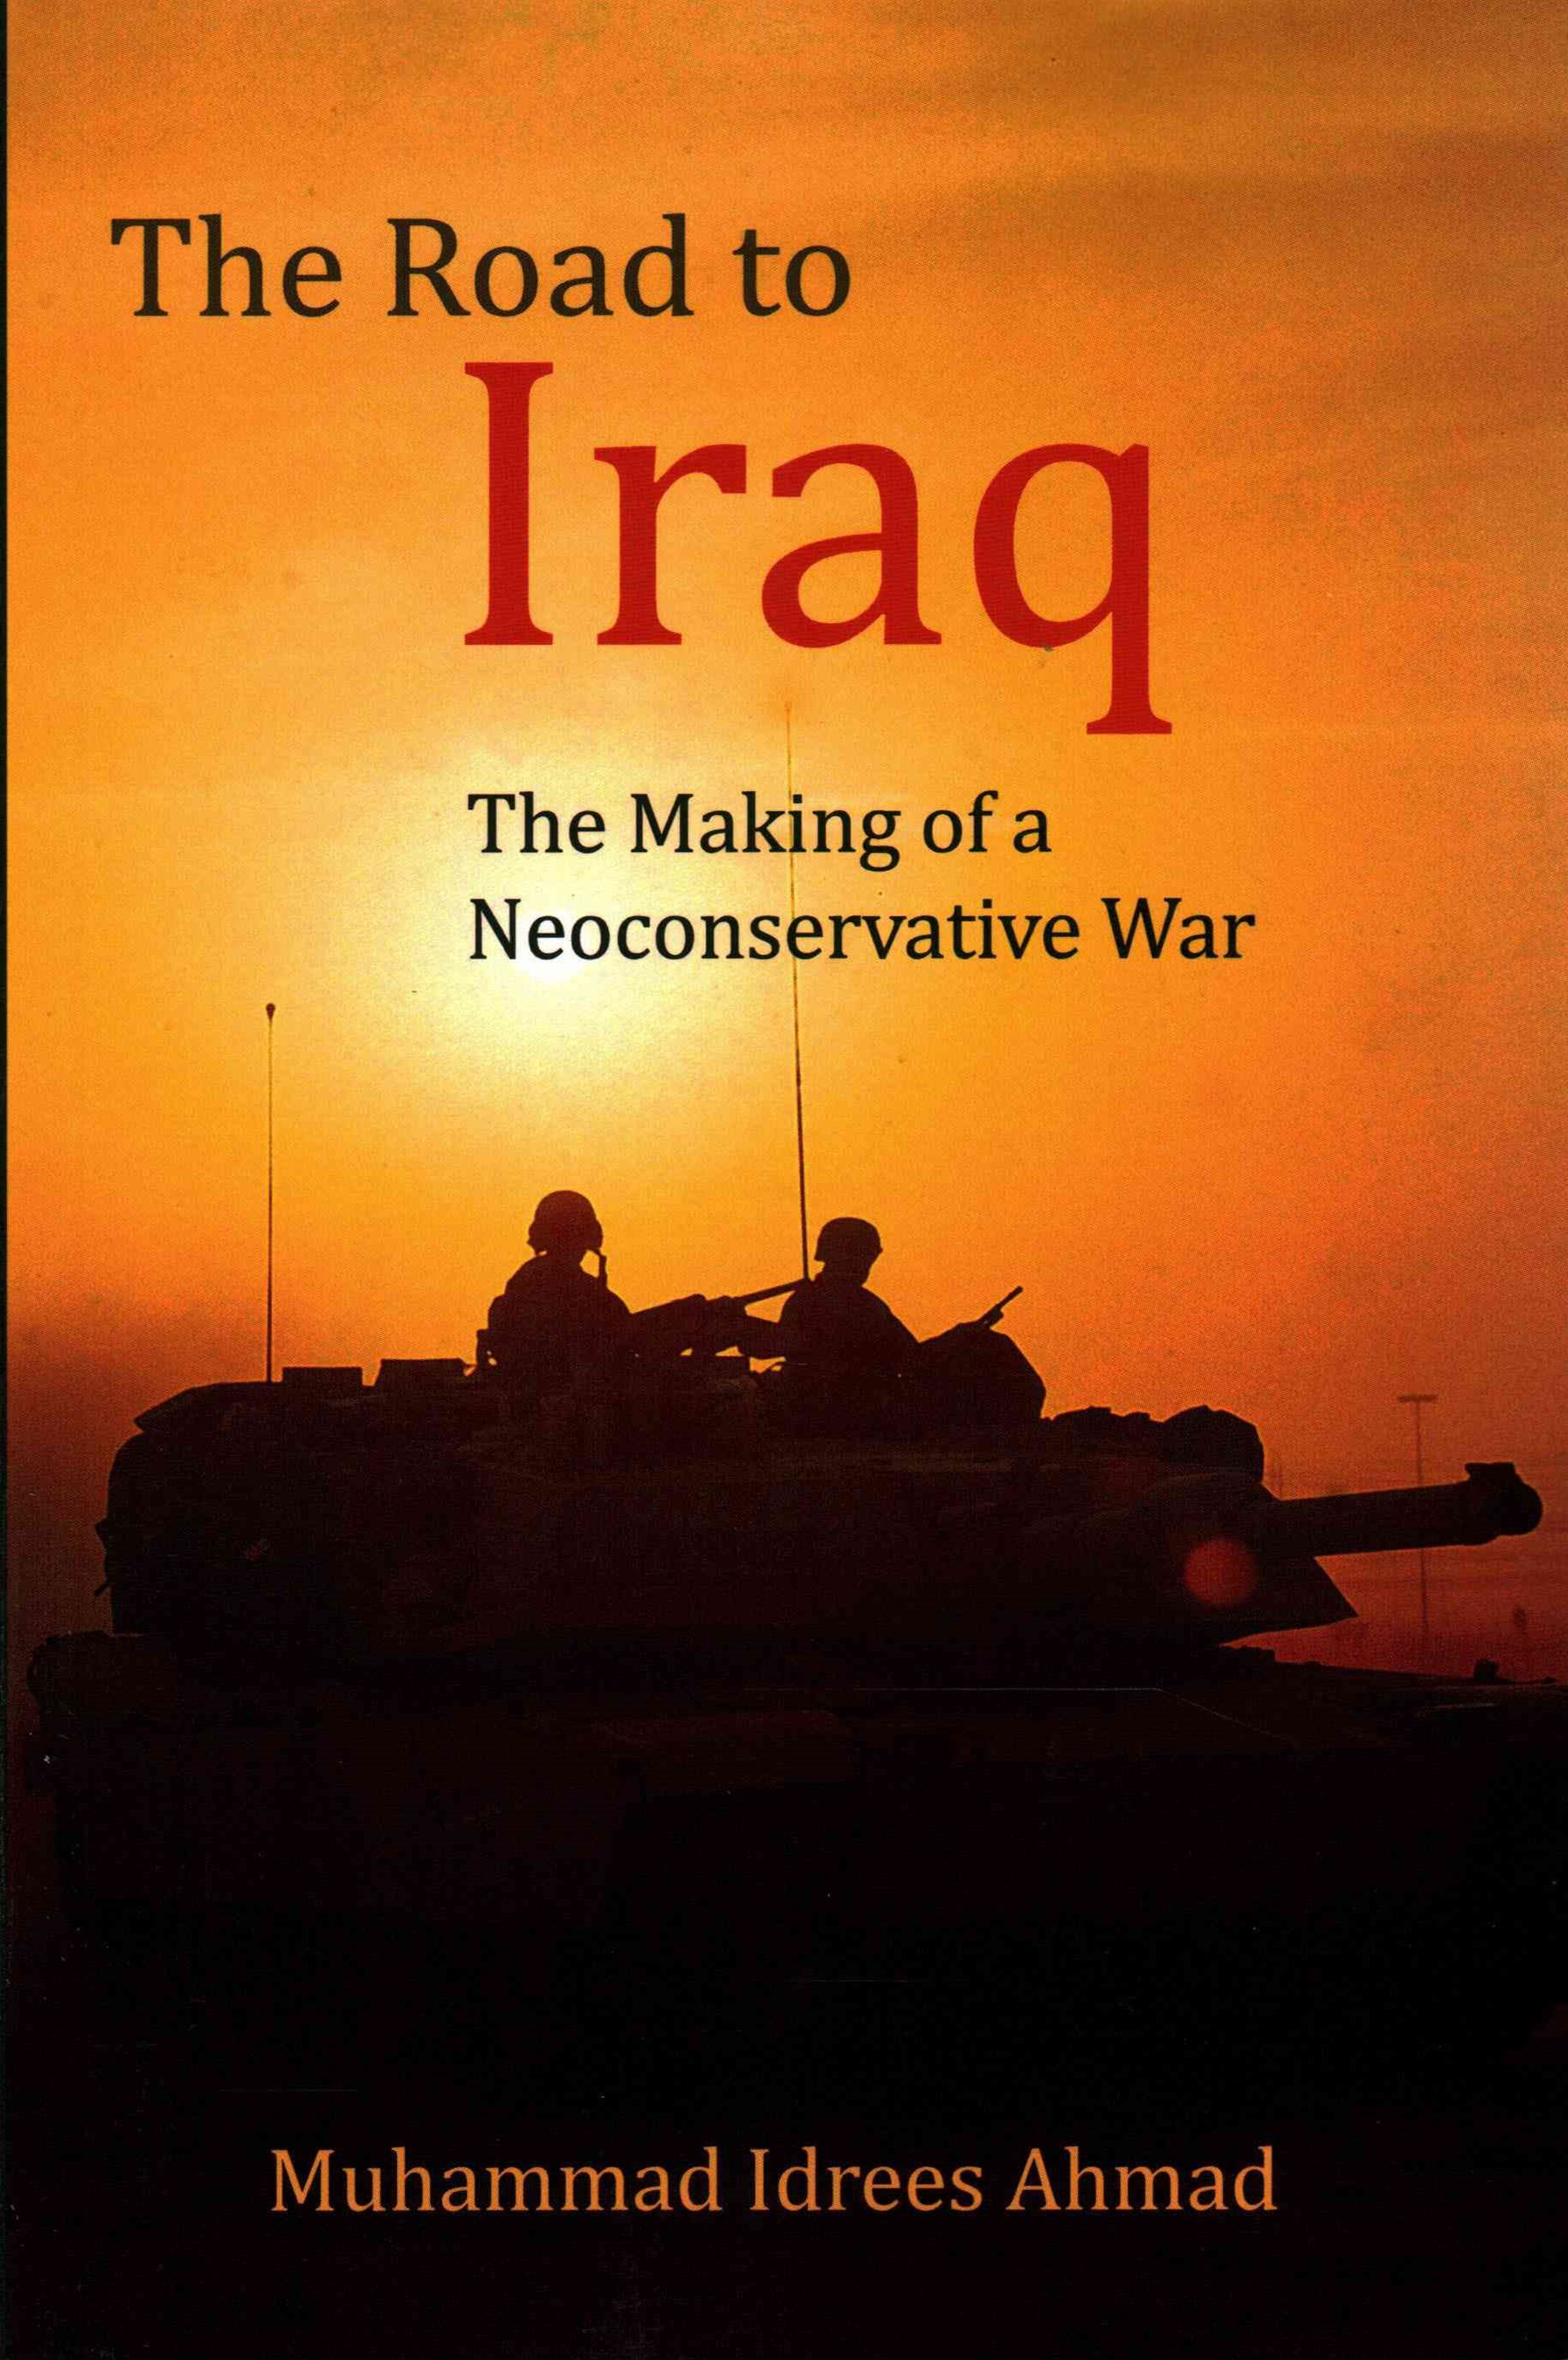 The Road to Iraq